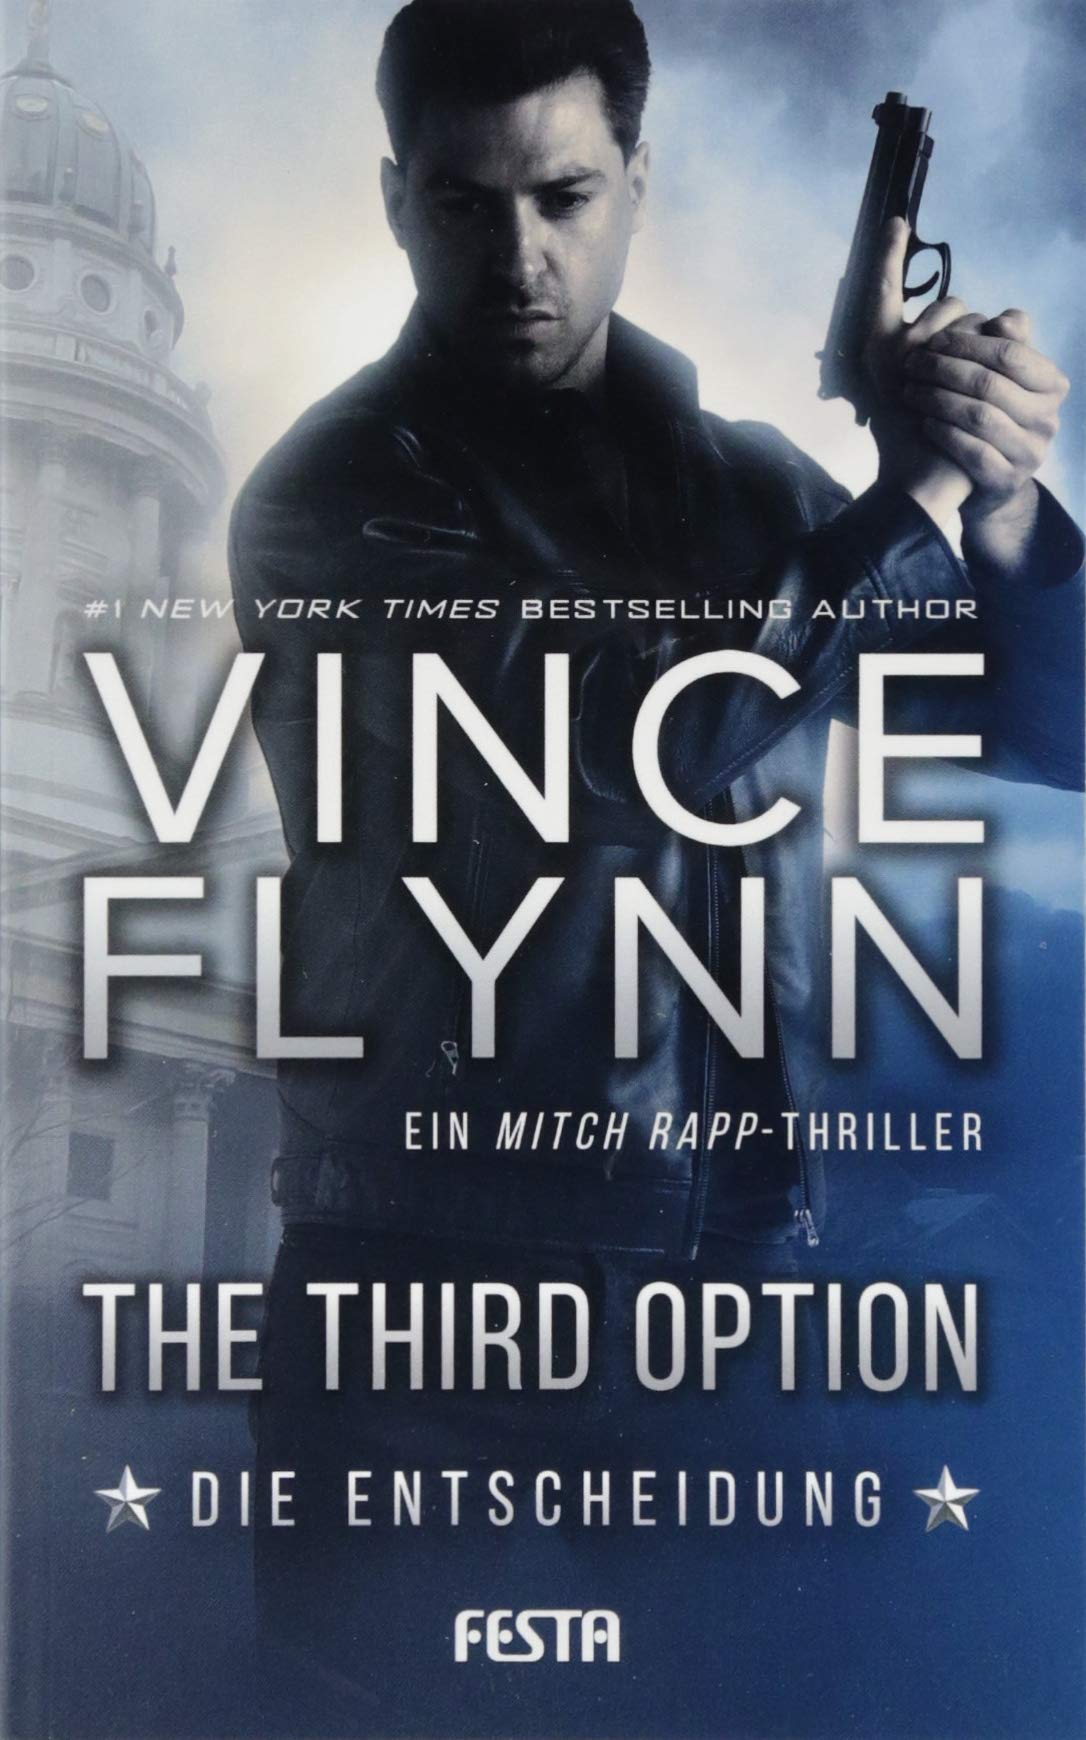 The Third Option - Die Entscheidung: Ein Mitch Rapp Thriller